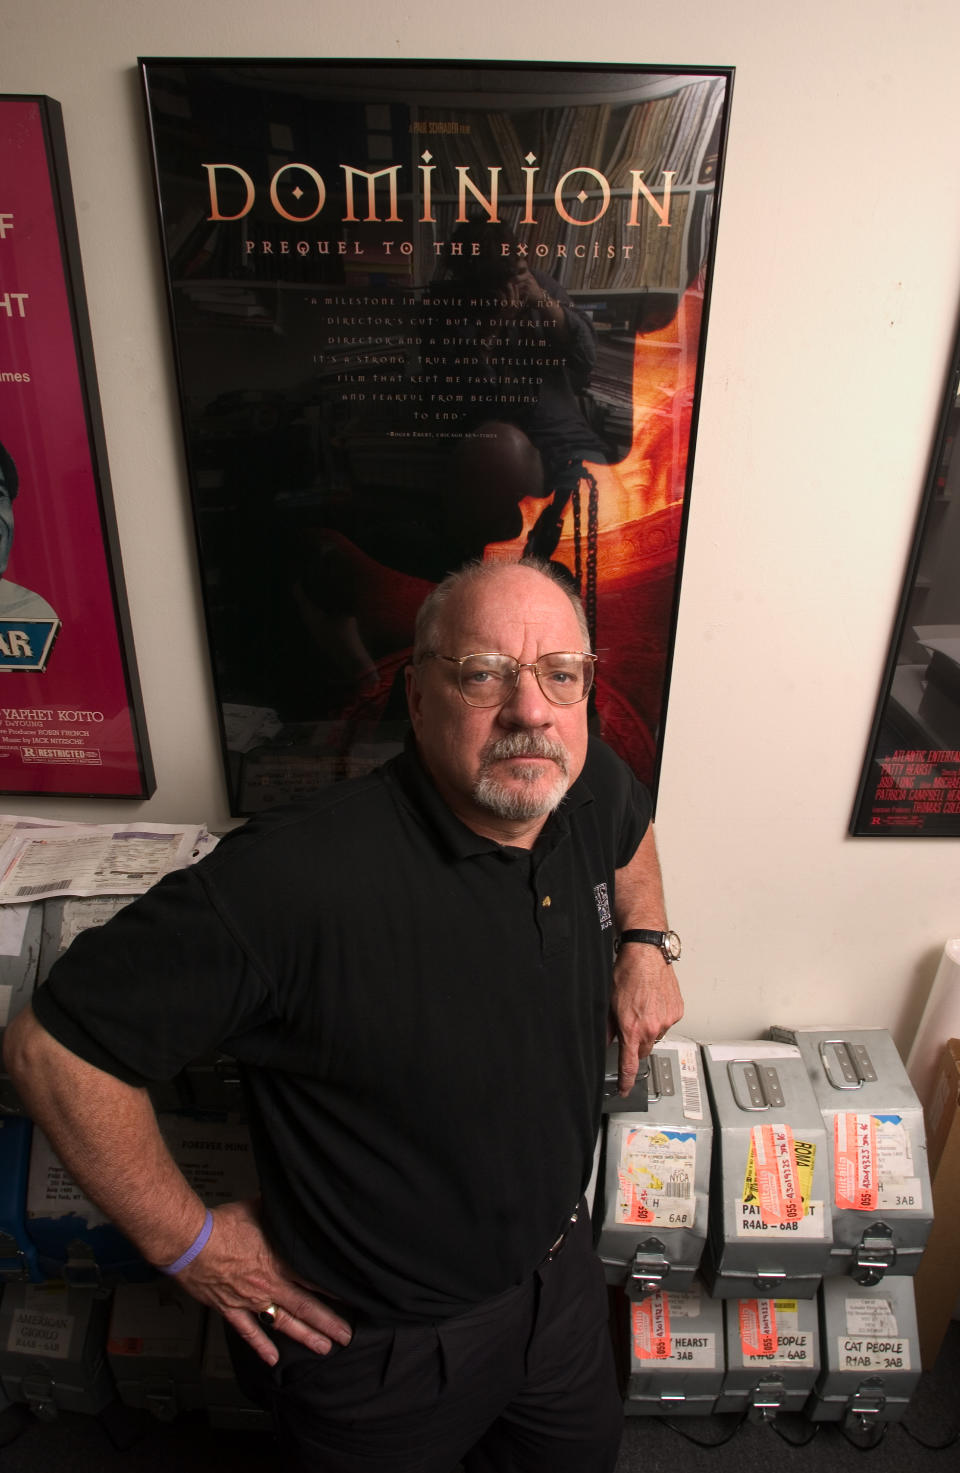 """Director and screenwriter Paul Schrader is photographed  in his New York office May 17, 2005, with a poster for his film """"Dominion Prequel to the Exorcist"""" on the wall behind him.  (AP Photo/Jim Cooper)"""